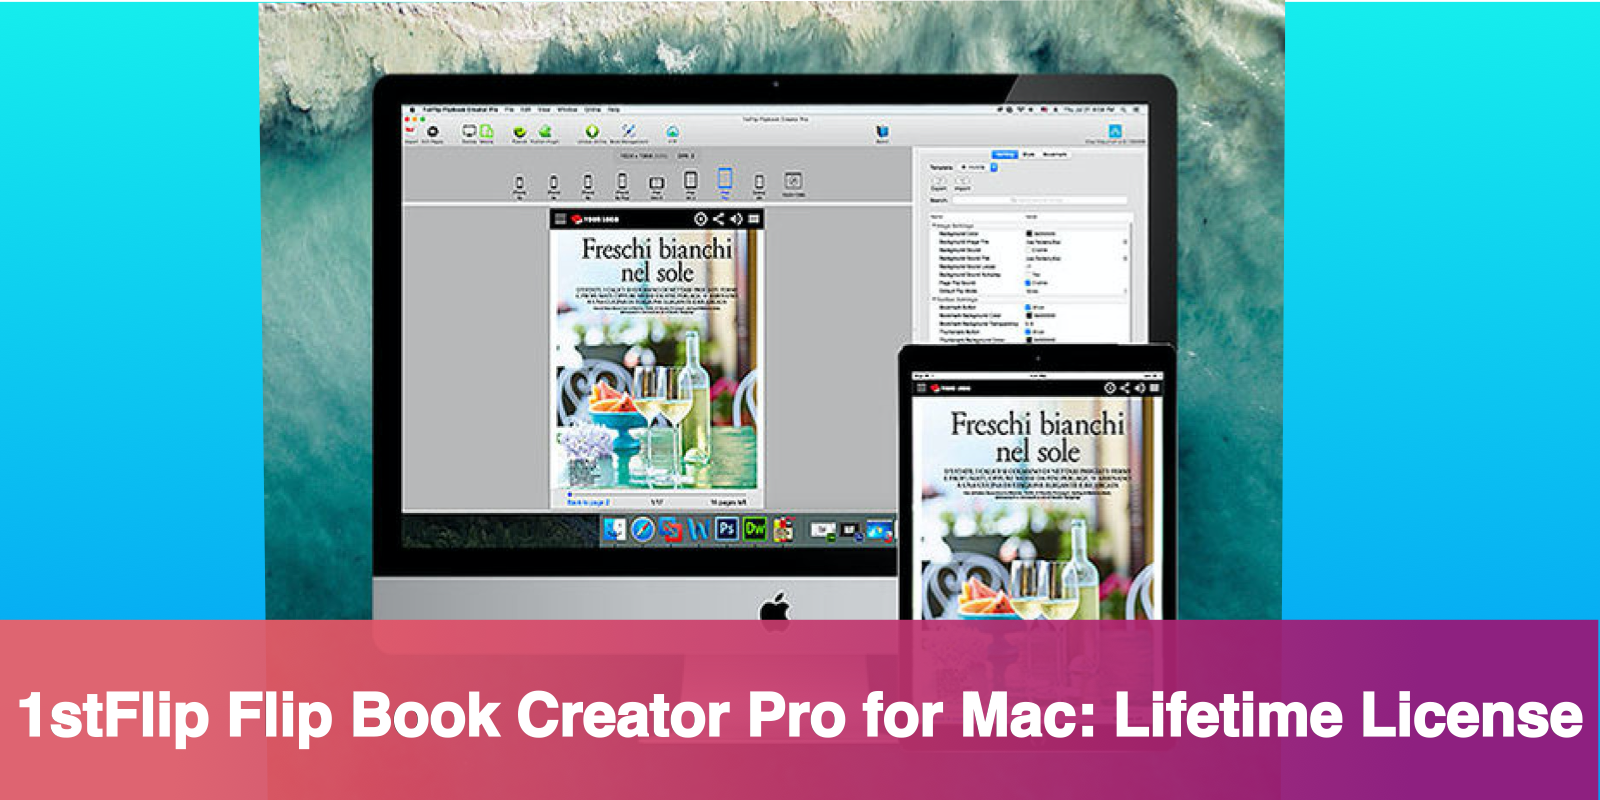 $29.99 1stFlip Flip Book Creator Pro for Mac Lifetime License